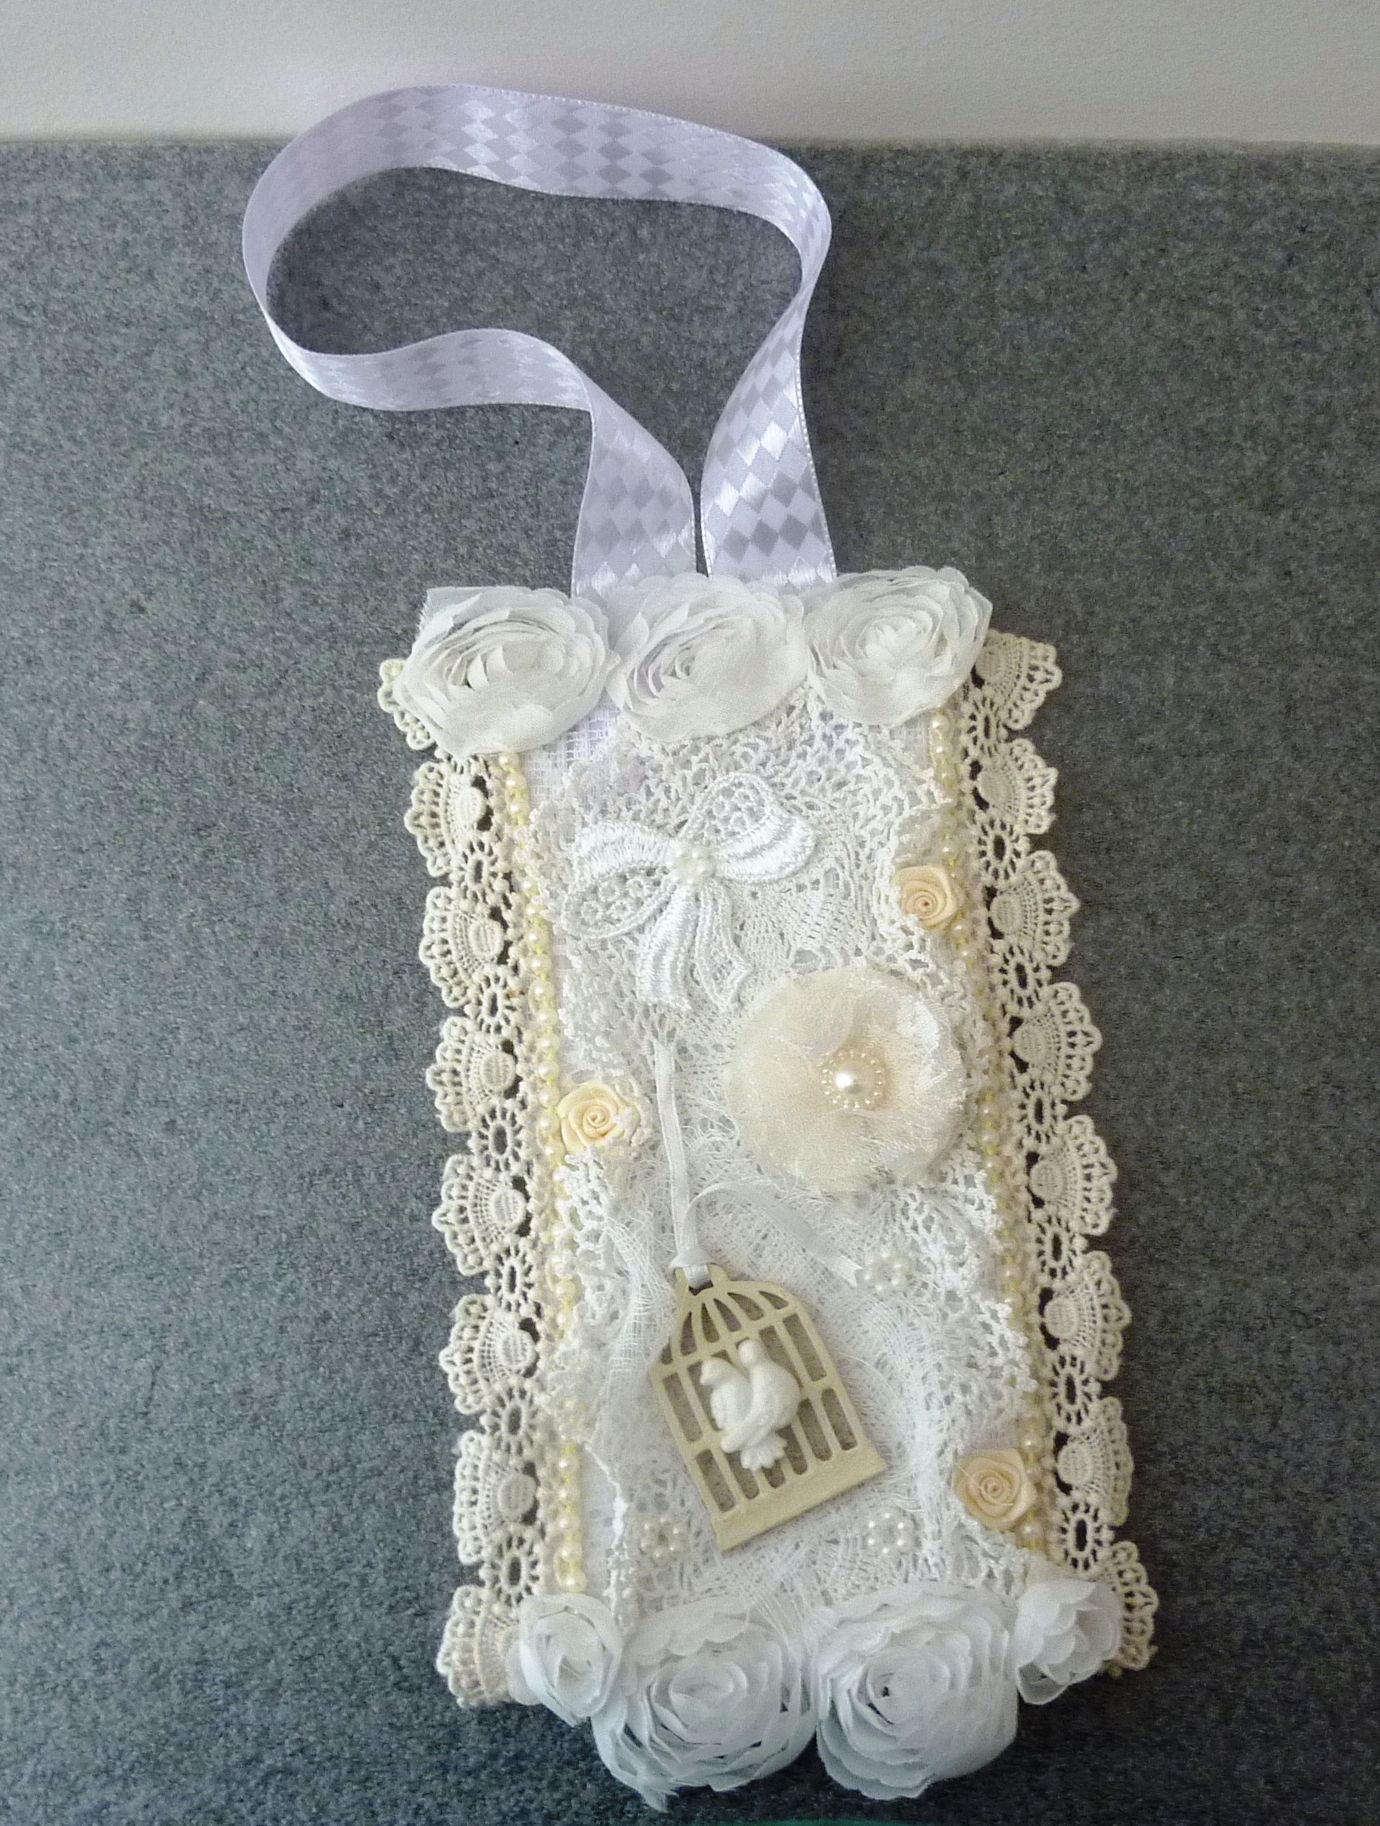 Fabric/Lace tag 'Winter Whites'